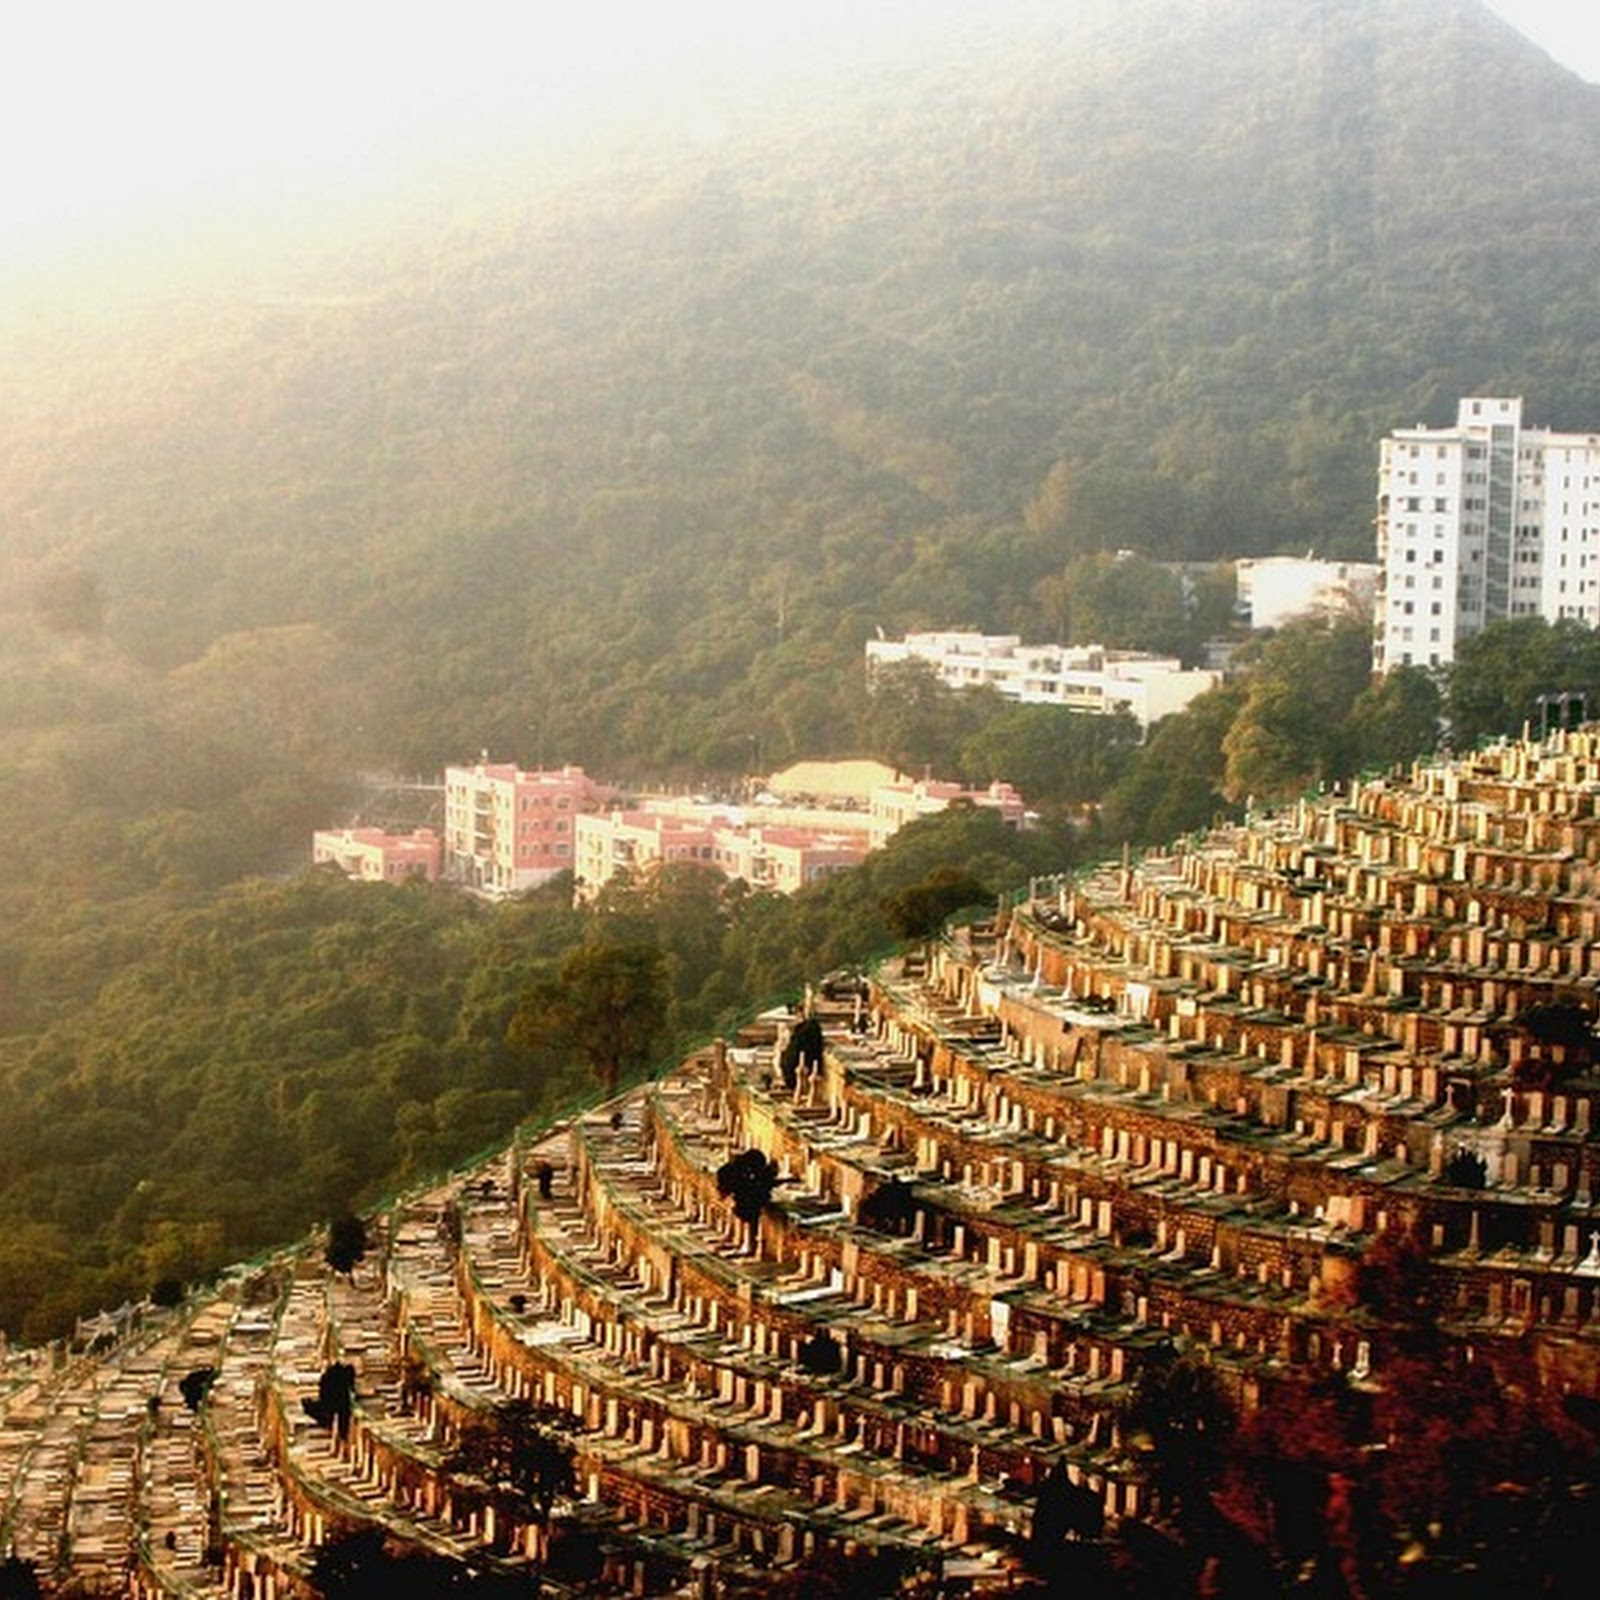 The Rise of Vertical Cemeteries